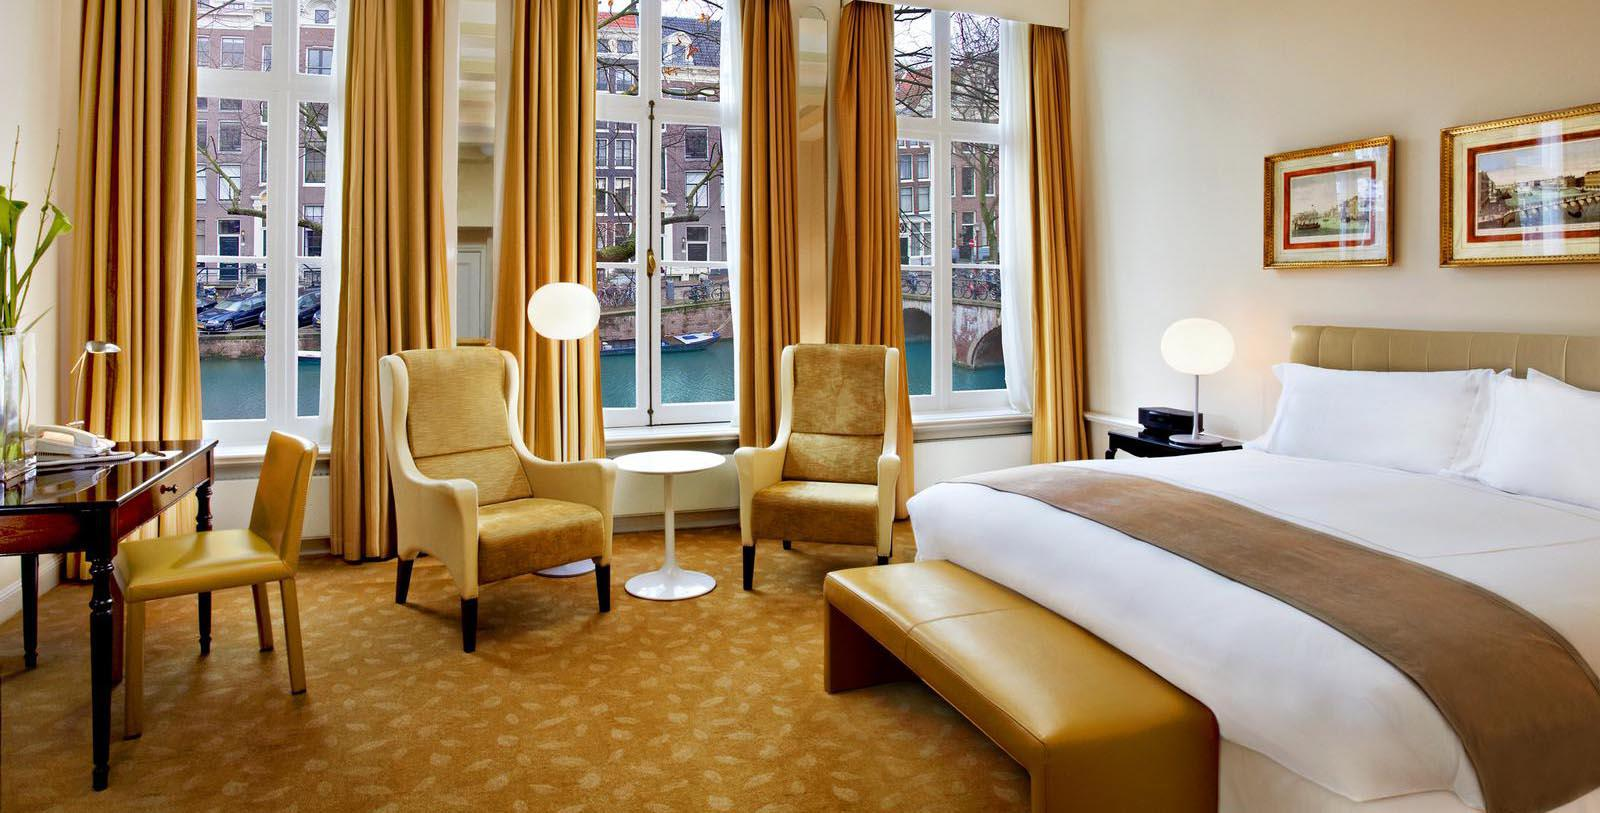 Image of Guestroom Interior Pulitzer Amsterdam, 17th Century, Member of Historic Hotels Worldwide, in Amsterdam, Netherlands, Accommodations